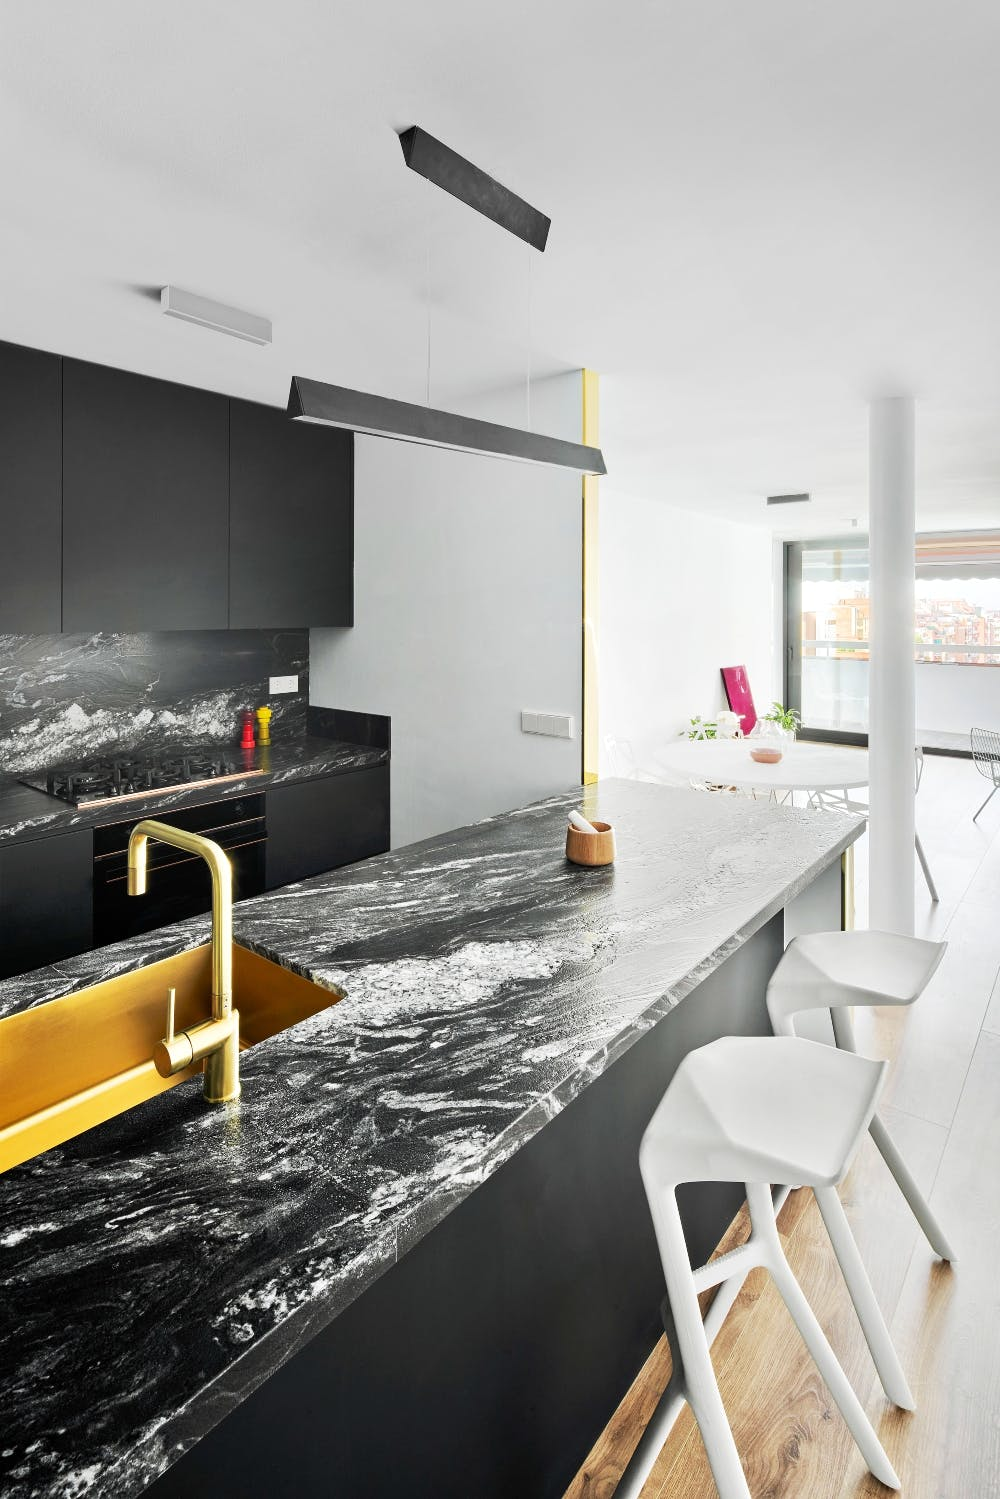 Image of 2art 2 in Connected spaces creating an open and brilliant home - Cosentino